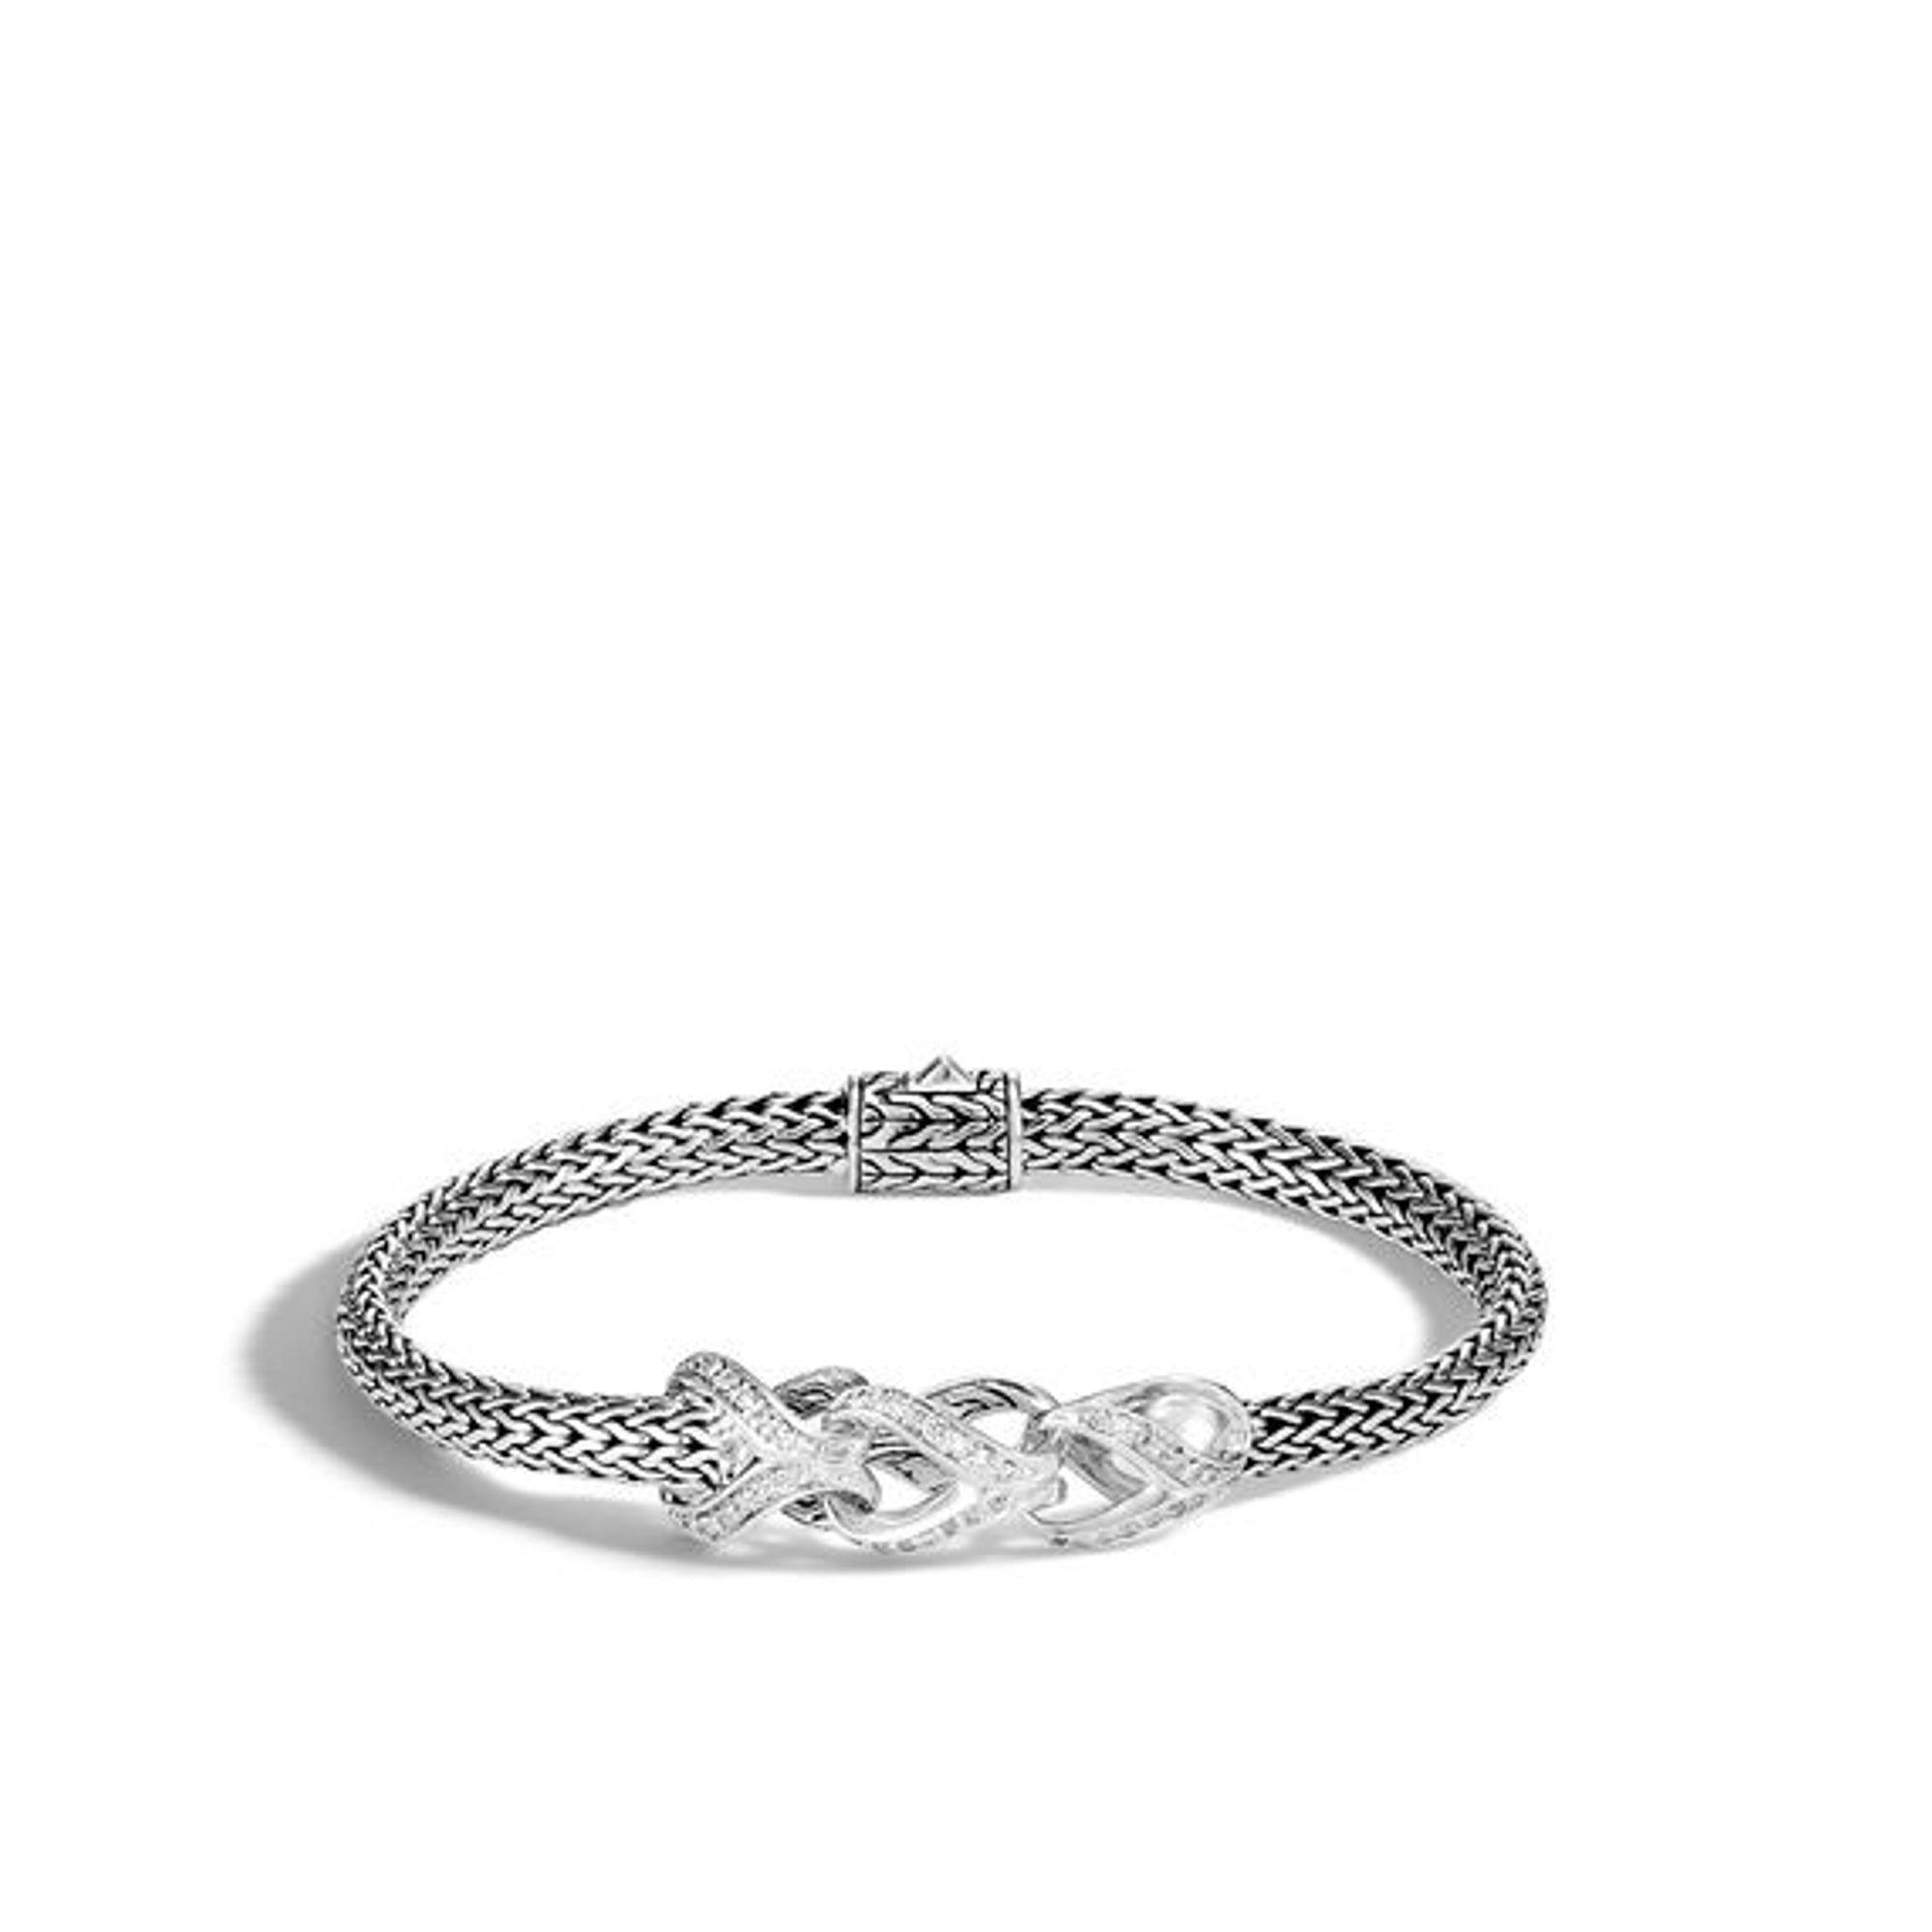 Women's Asli Link Station Bracelet with Diamond